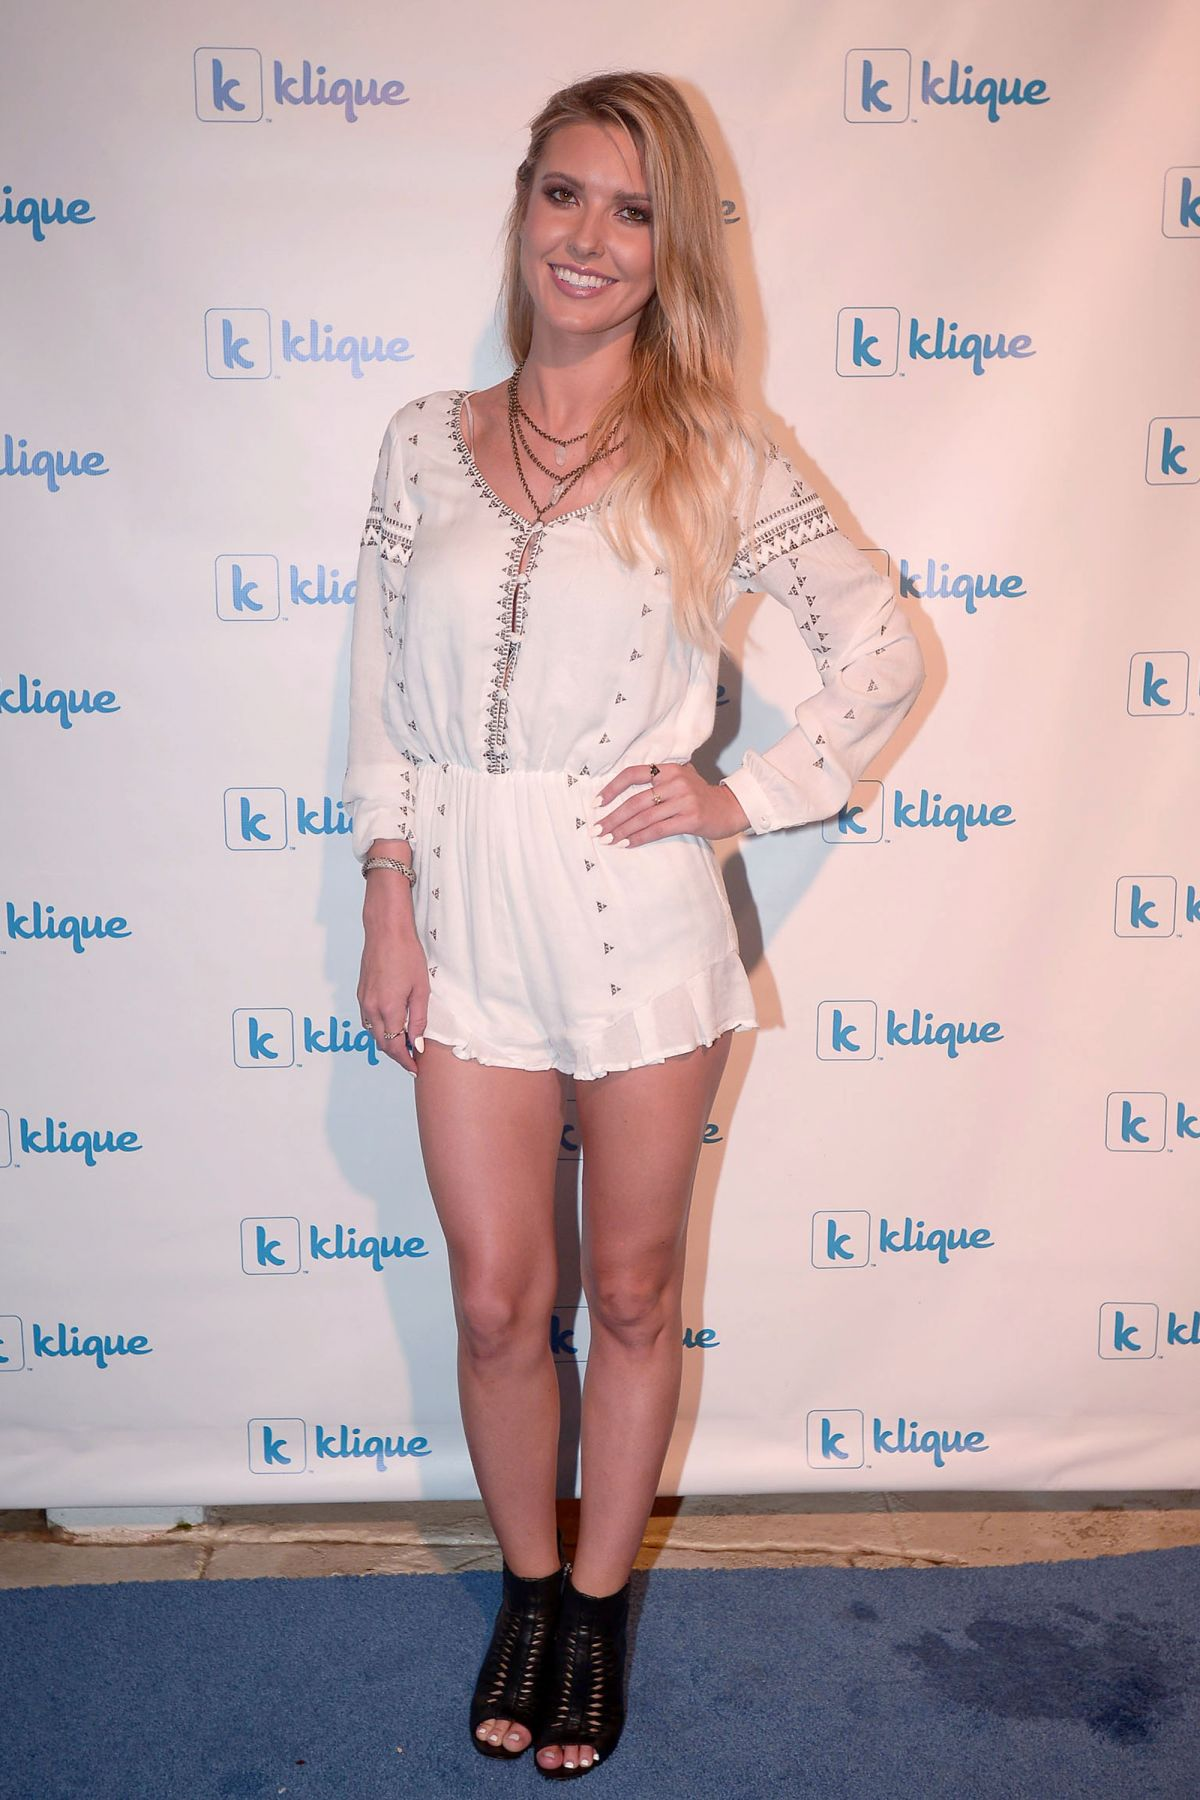 AUDRINA PATRIDGE at Klique App Miami Launch Party in Miami Beach